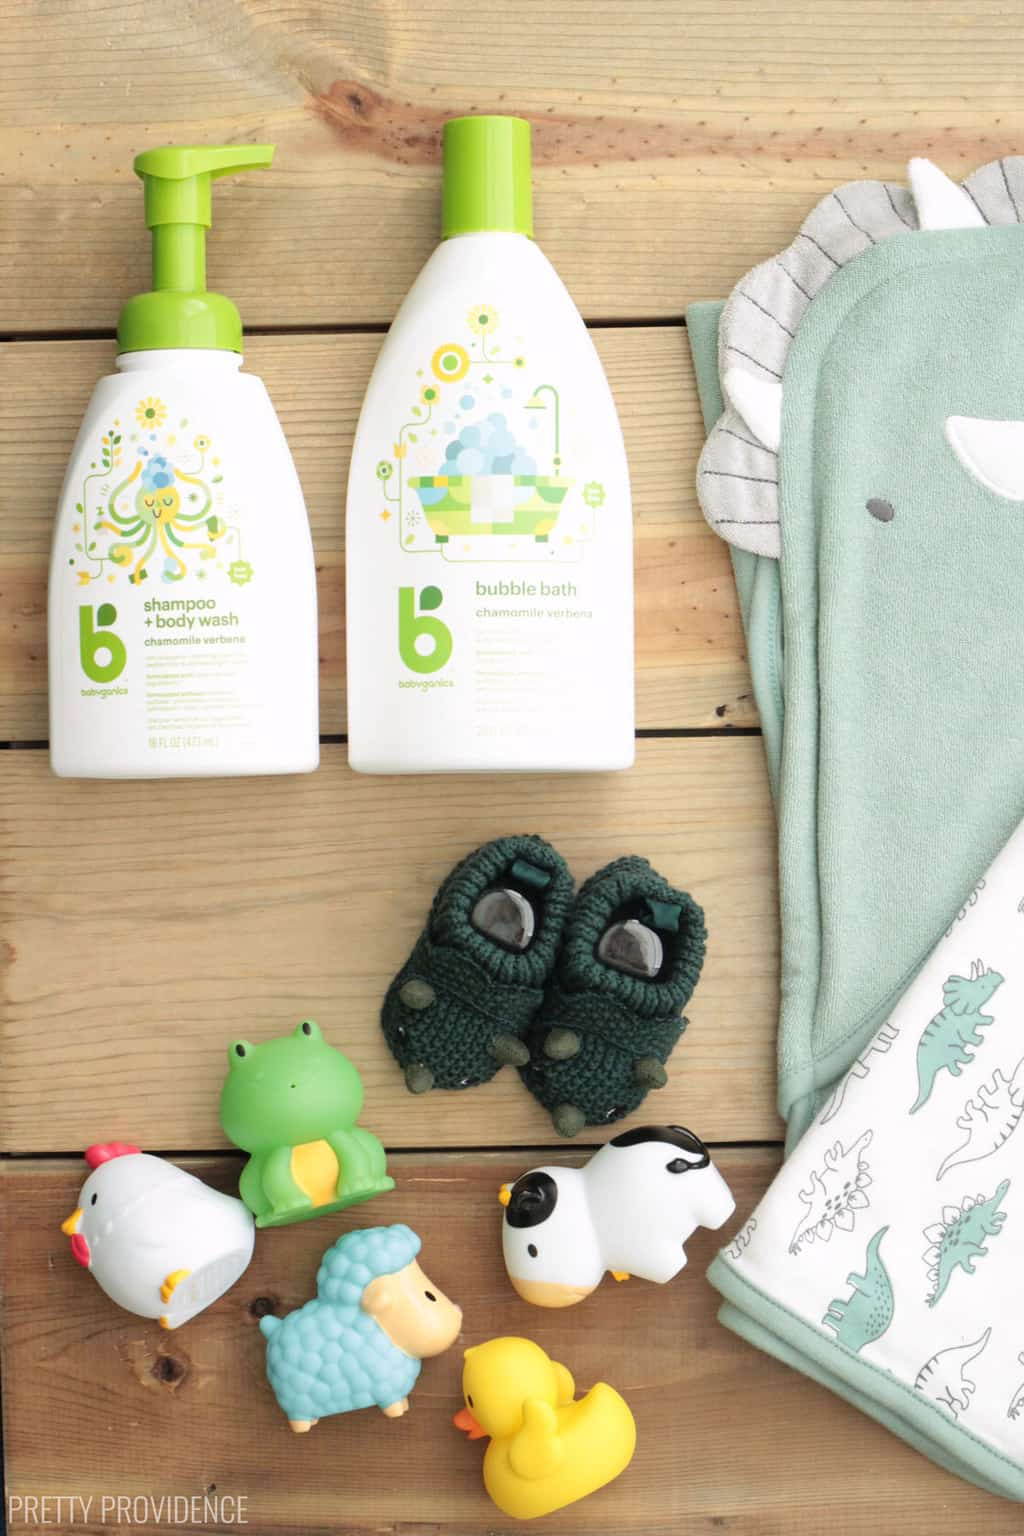 baby shower gift items: dinosaur towels, green dinosaur slippers, bath toys, baby shampoo and lotion